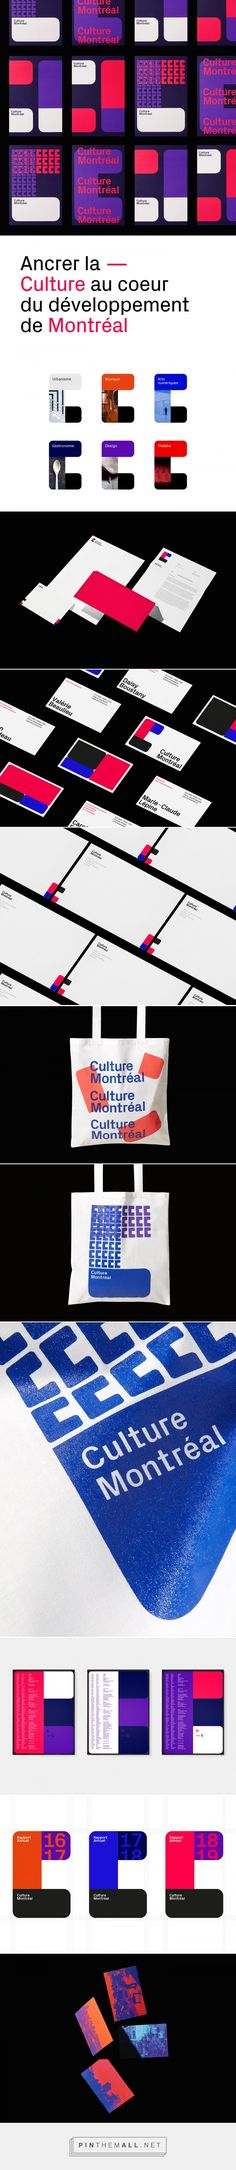 Culture Montréal Identity - Mindsparkle Mag... - a grouped images picture - Pin Them All